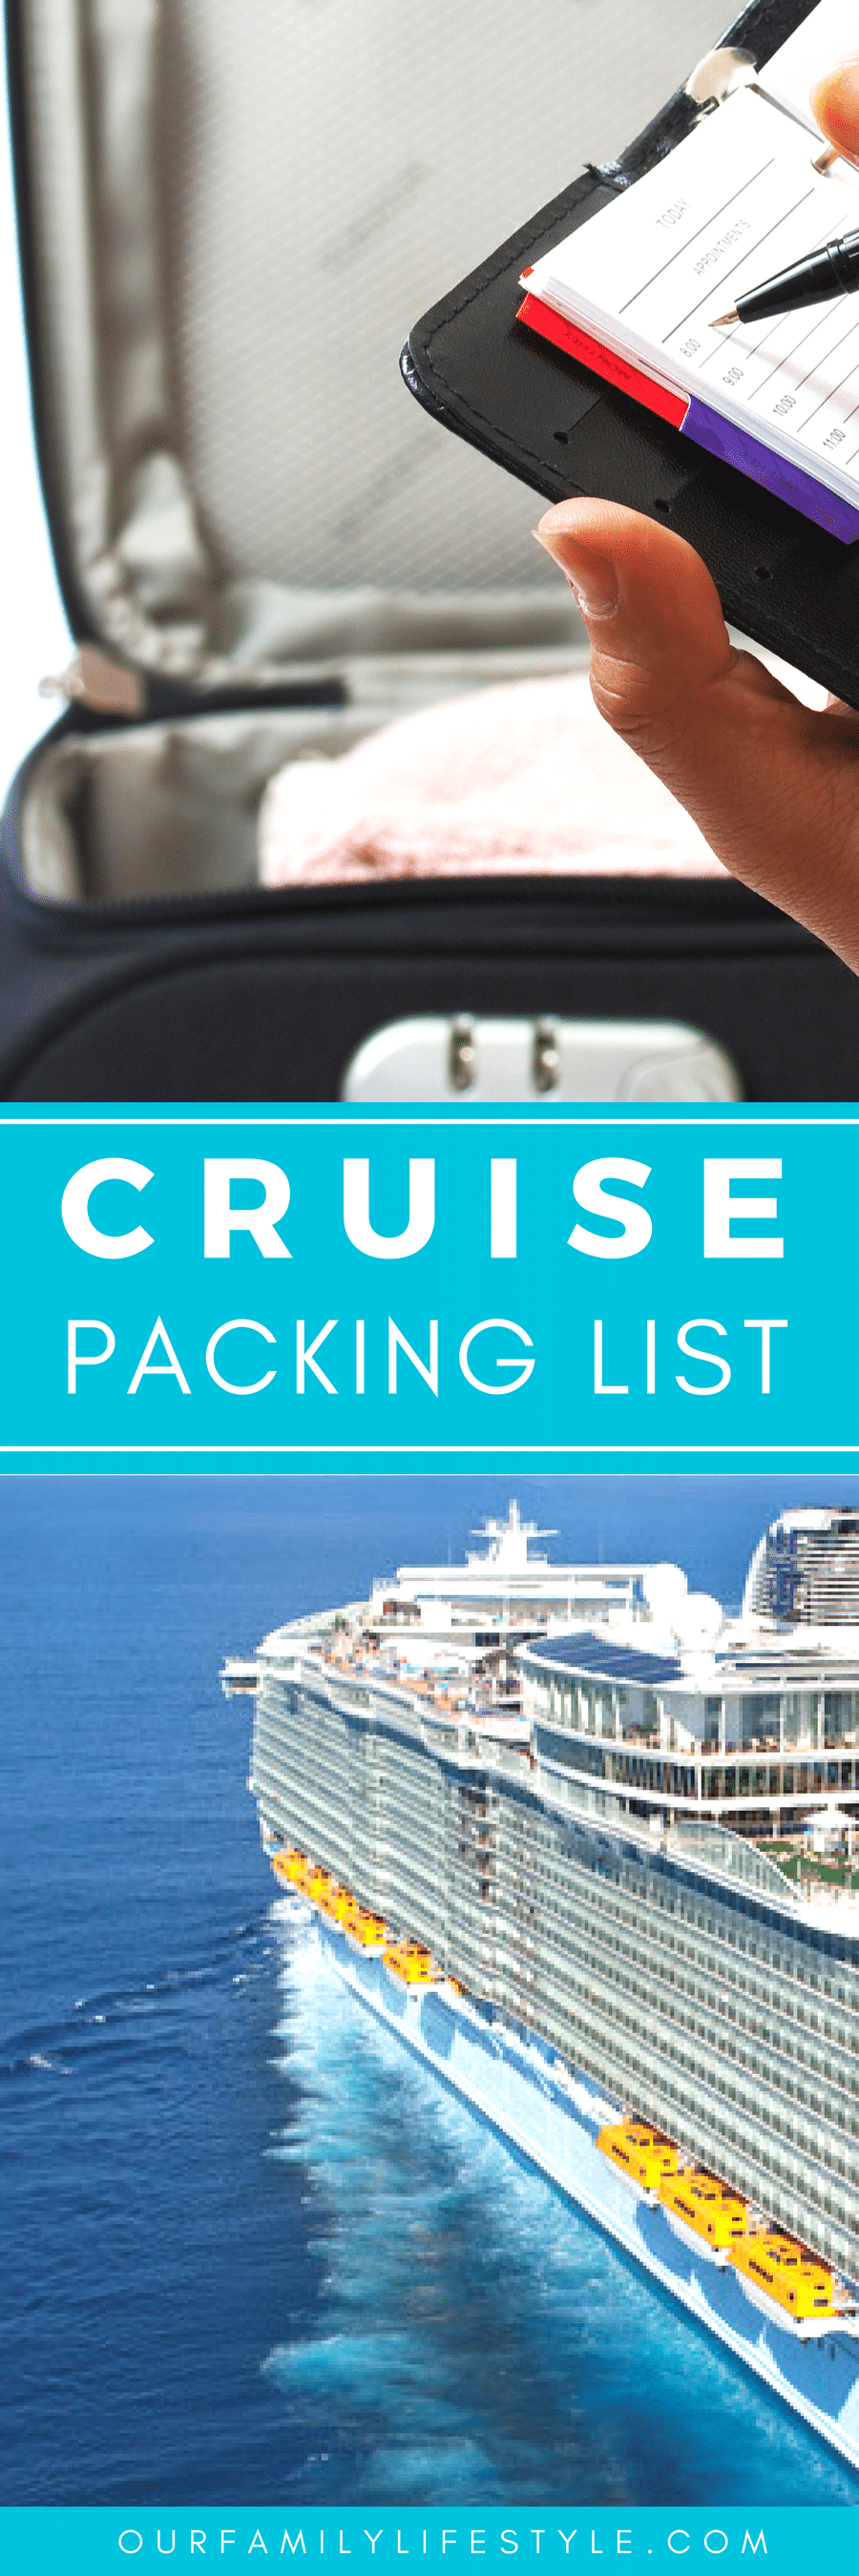 Step Aboard Fully Prepared With This Cruise Packing List - Can you text from a cruise ship